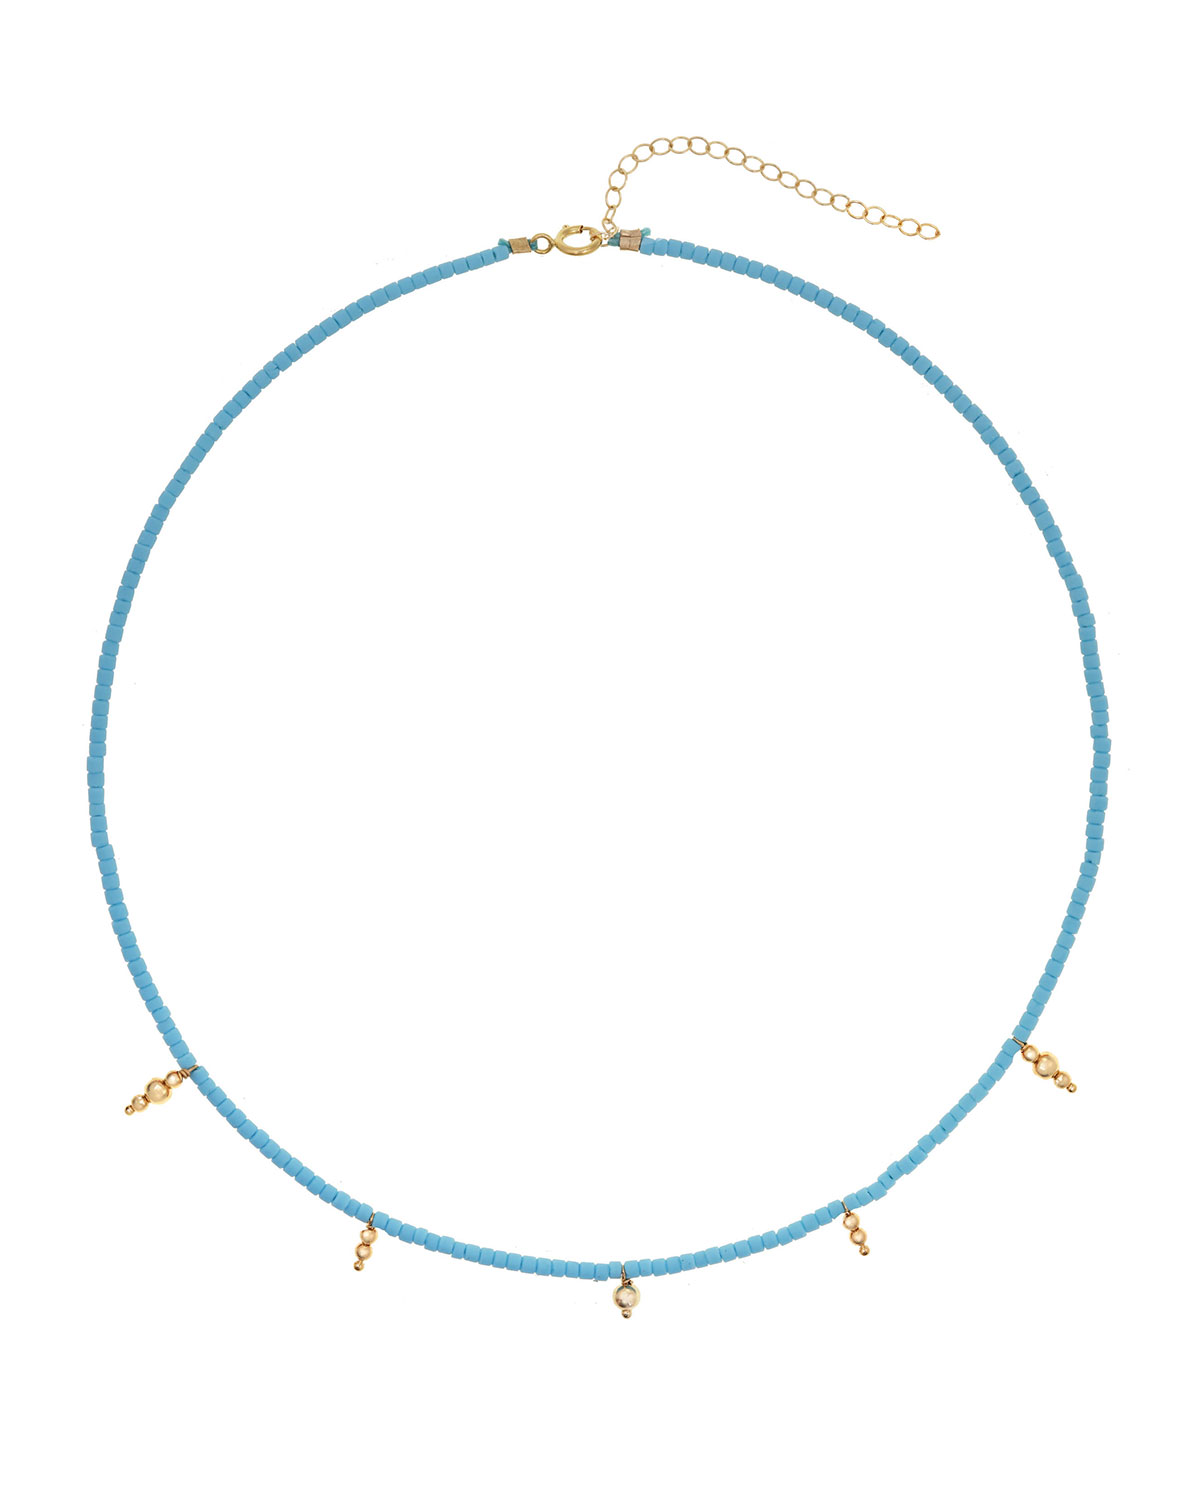 Ancienta 14k Gold-Filled Beaded Necklace